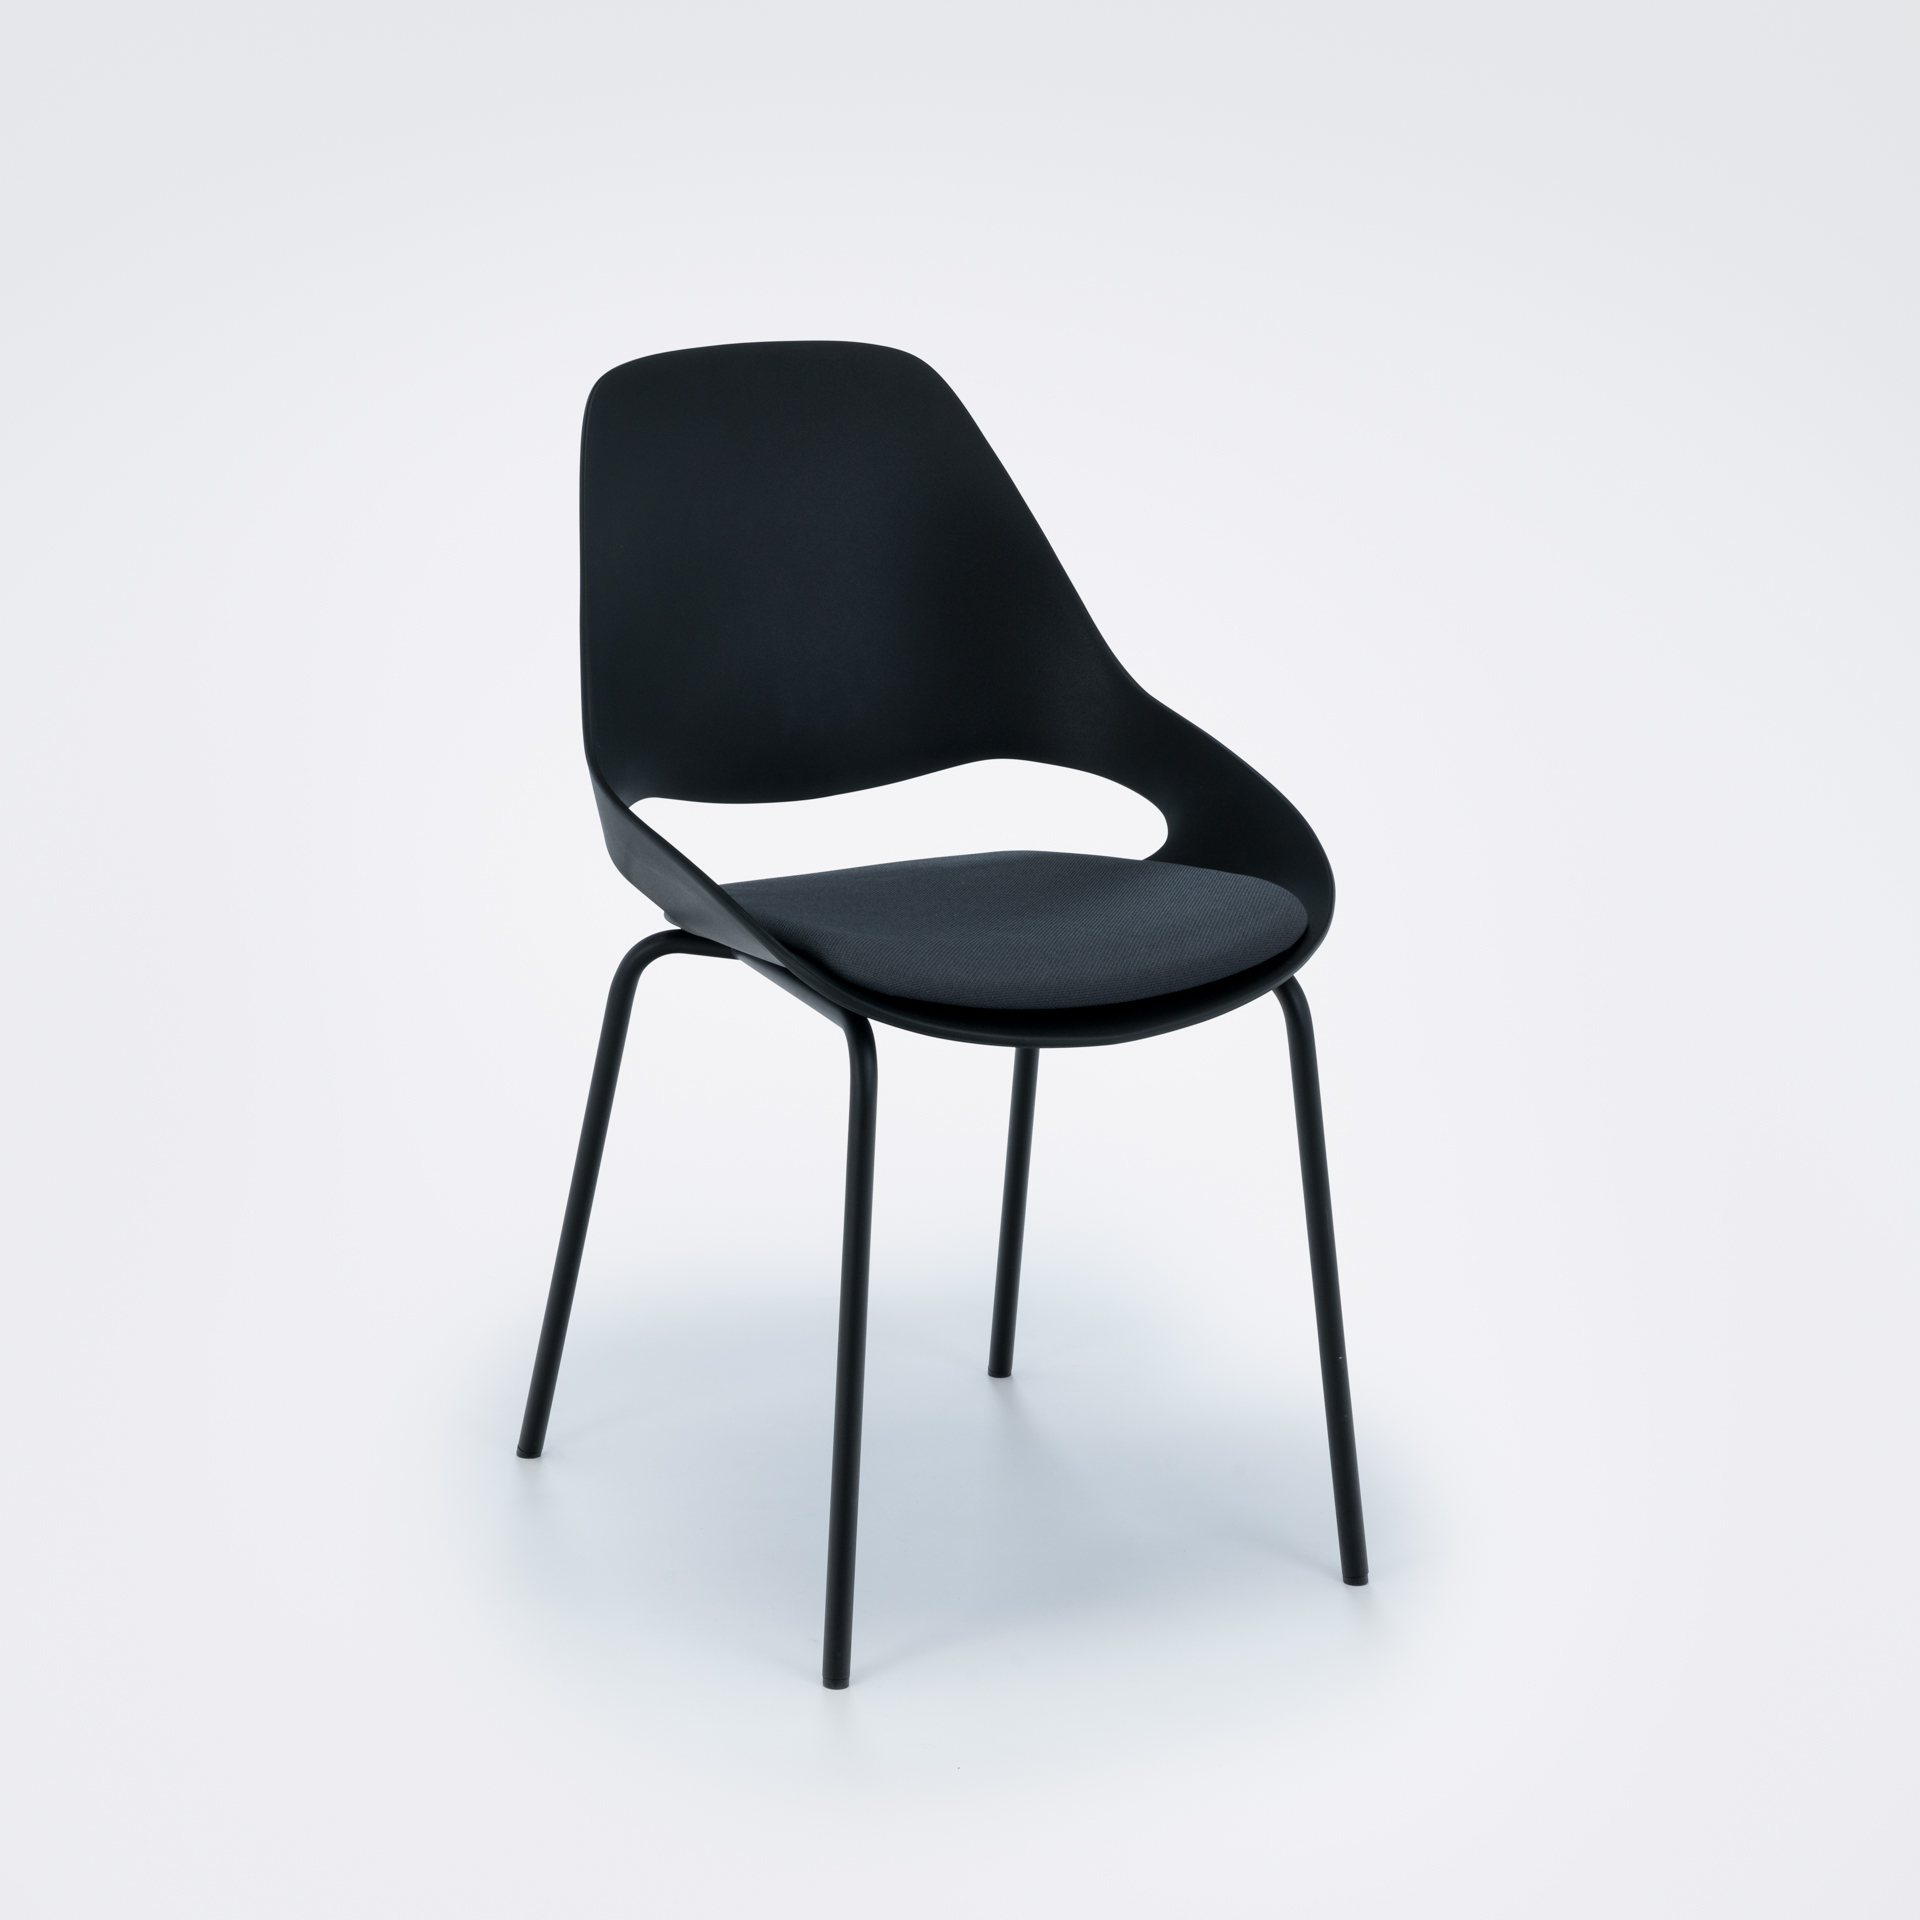 DINING CHAIR WITH PADDED SEAT // Black/ carbon grey // Black metal legs